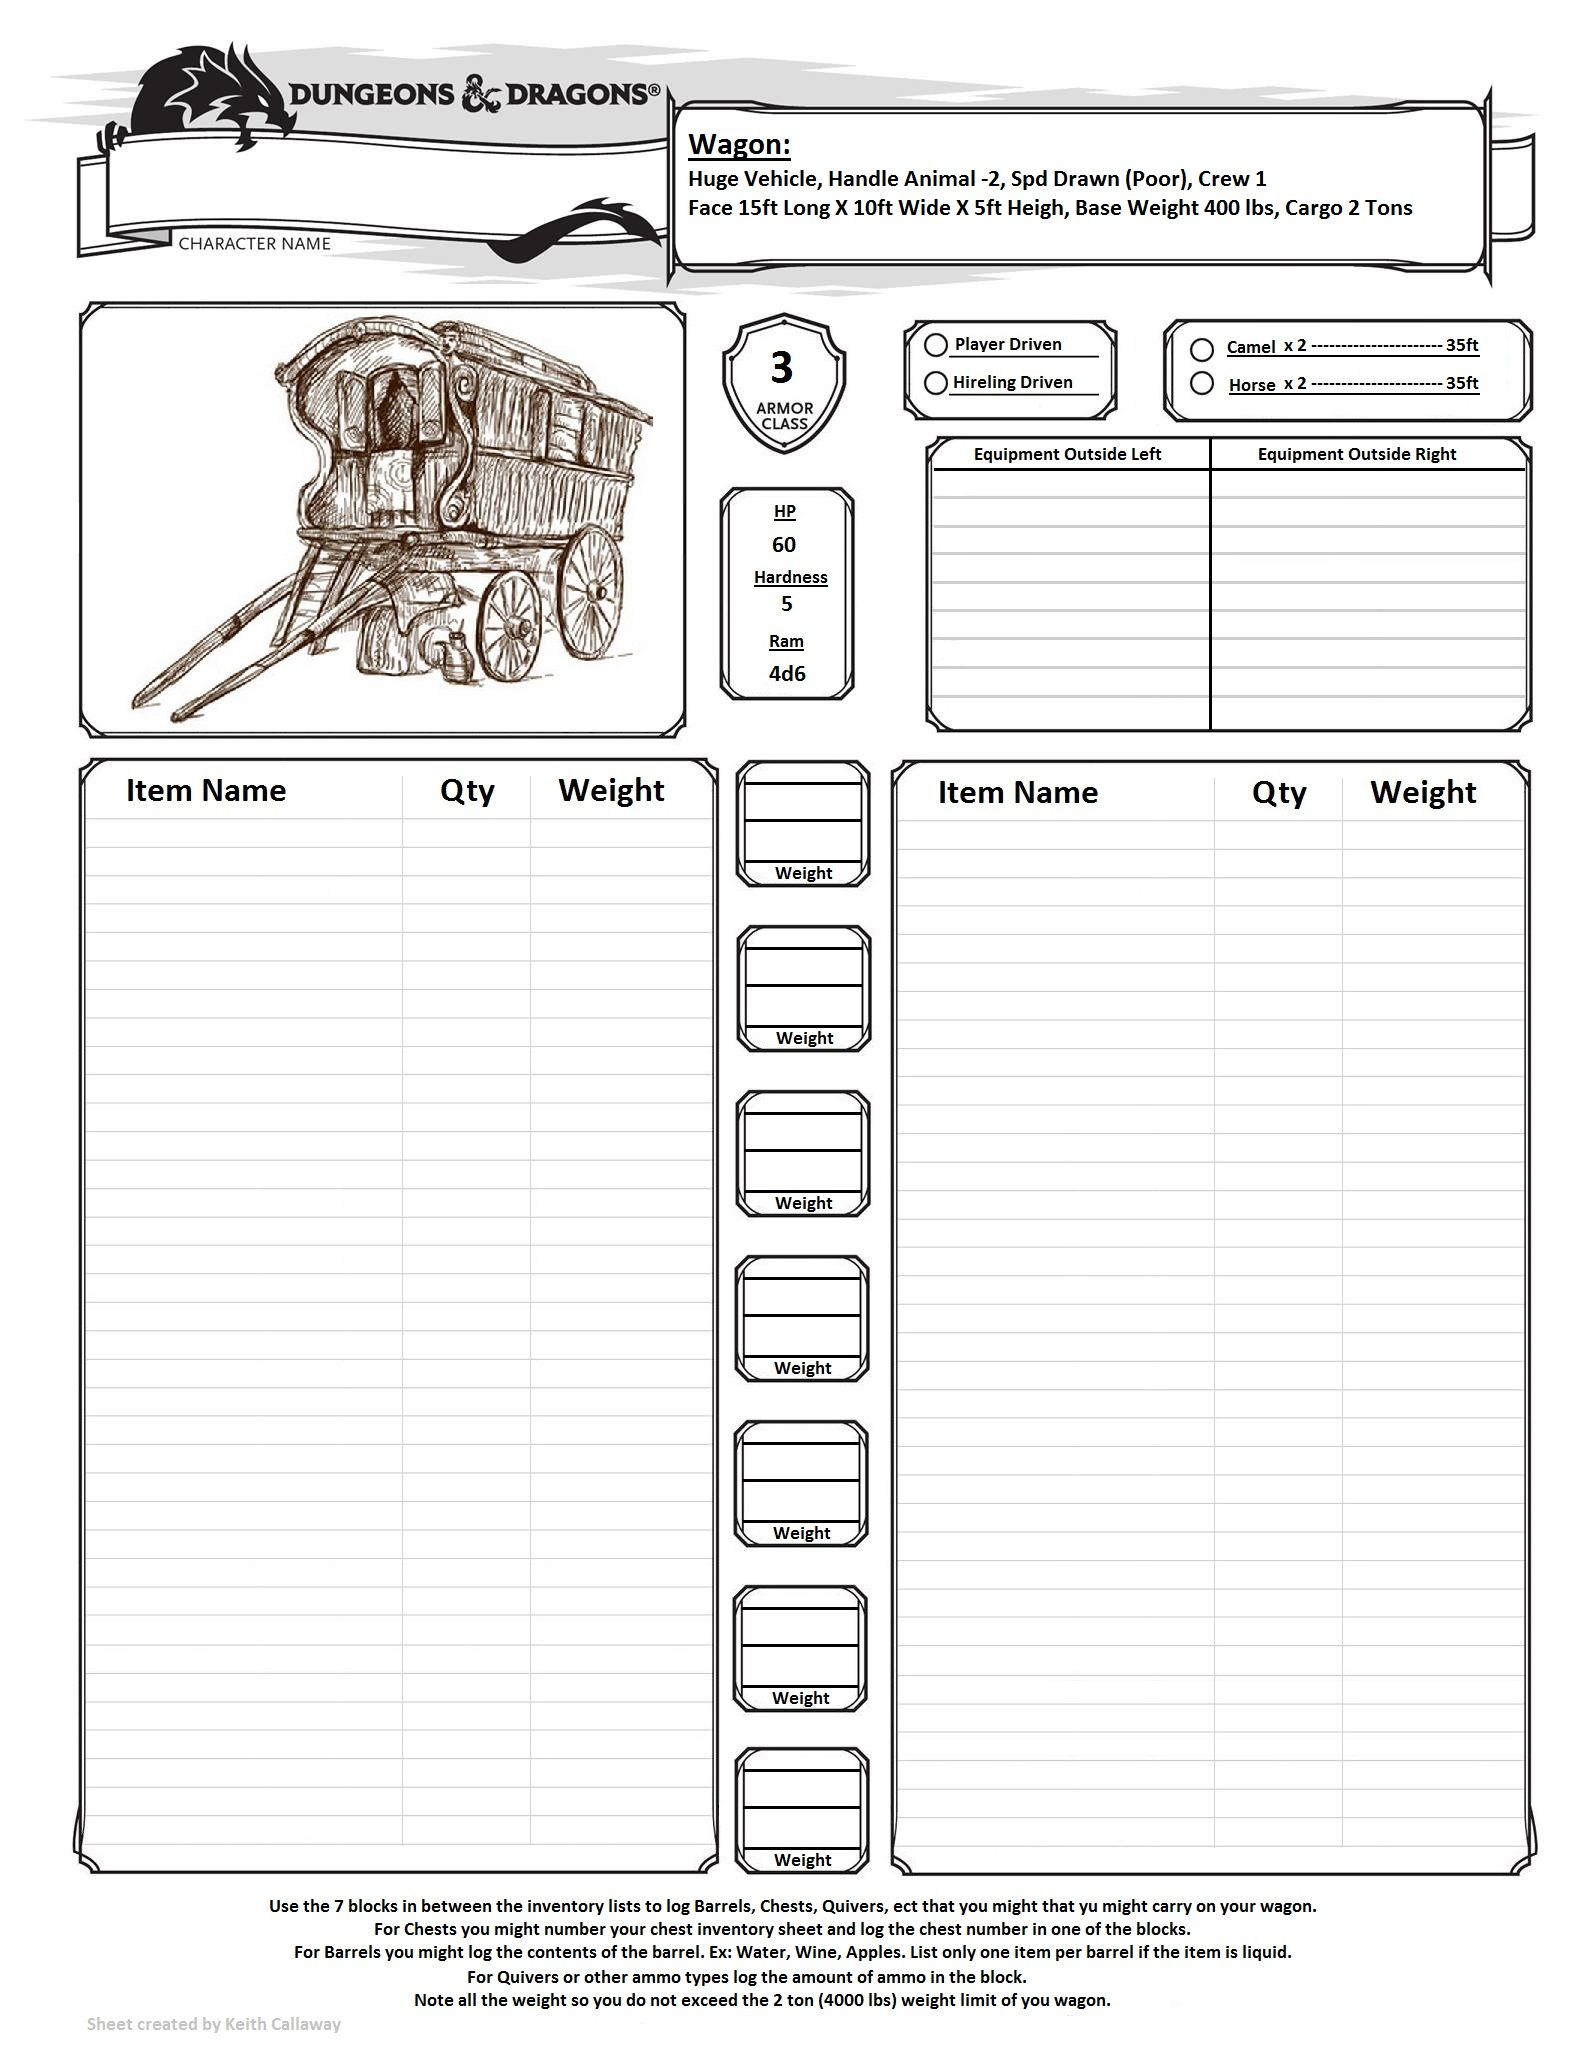 wagon inventory sheet for dungeons  u0026 dragons